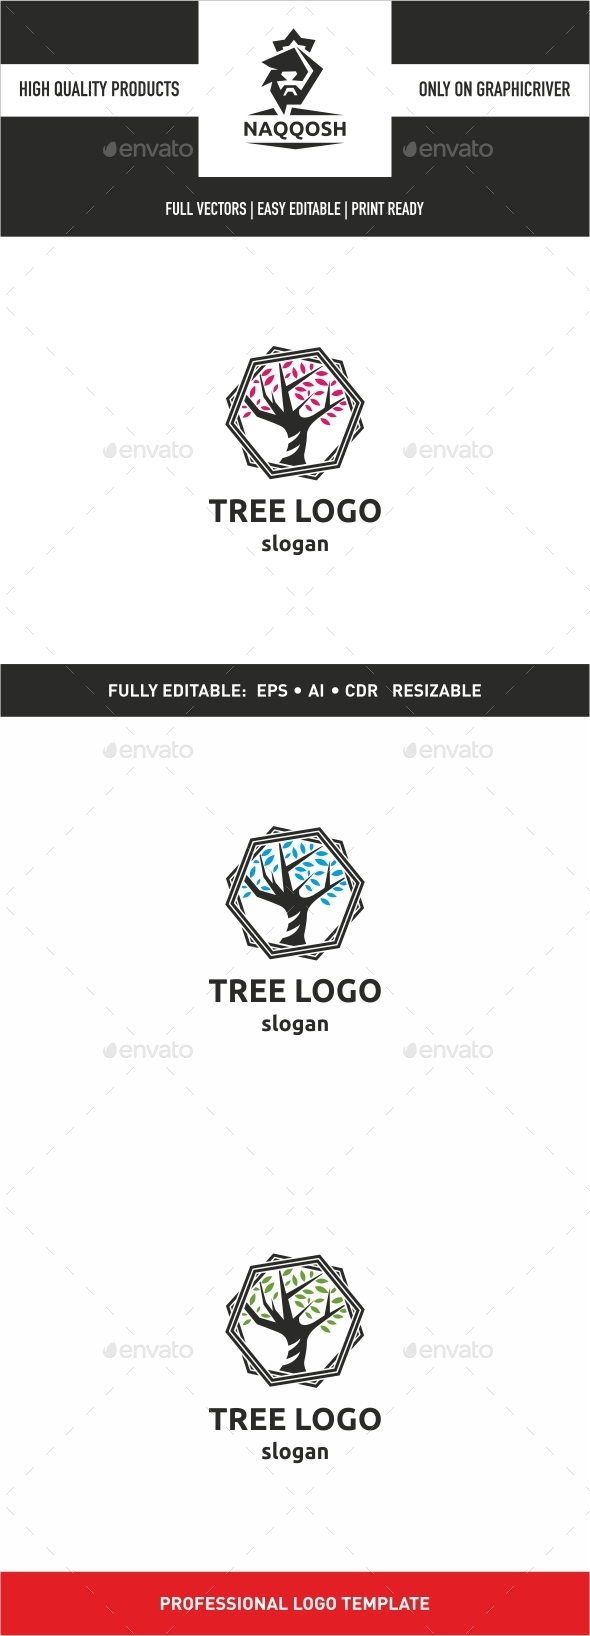 GraphicRiver Tree Logo 9991953